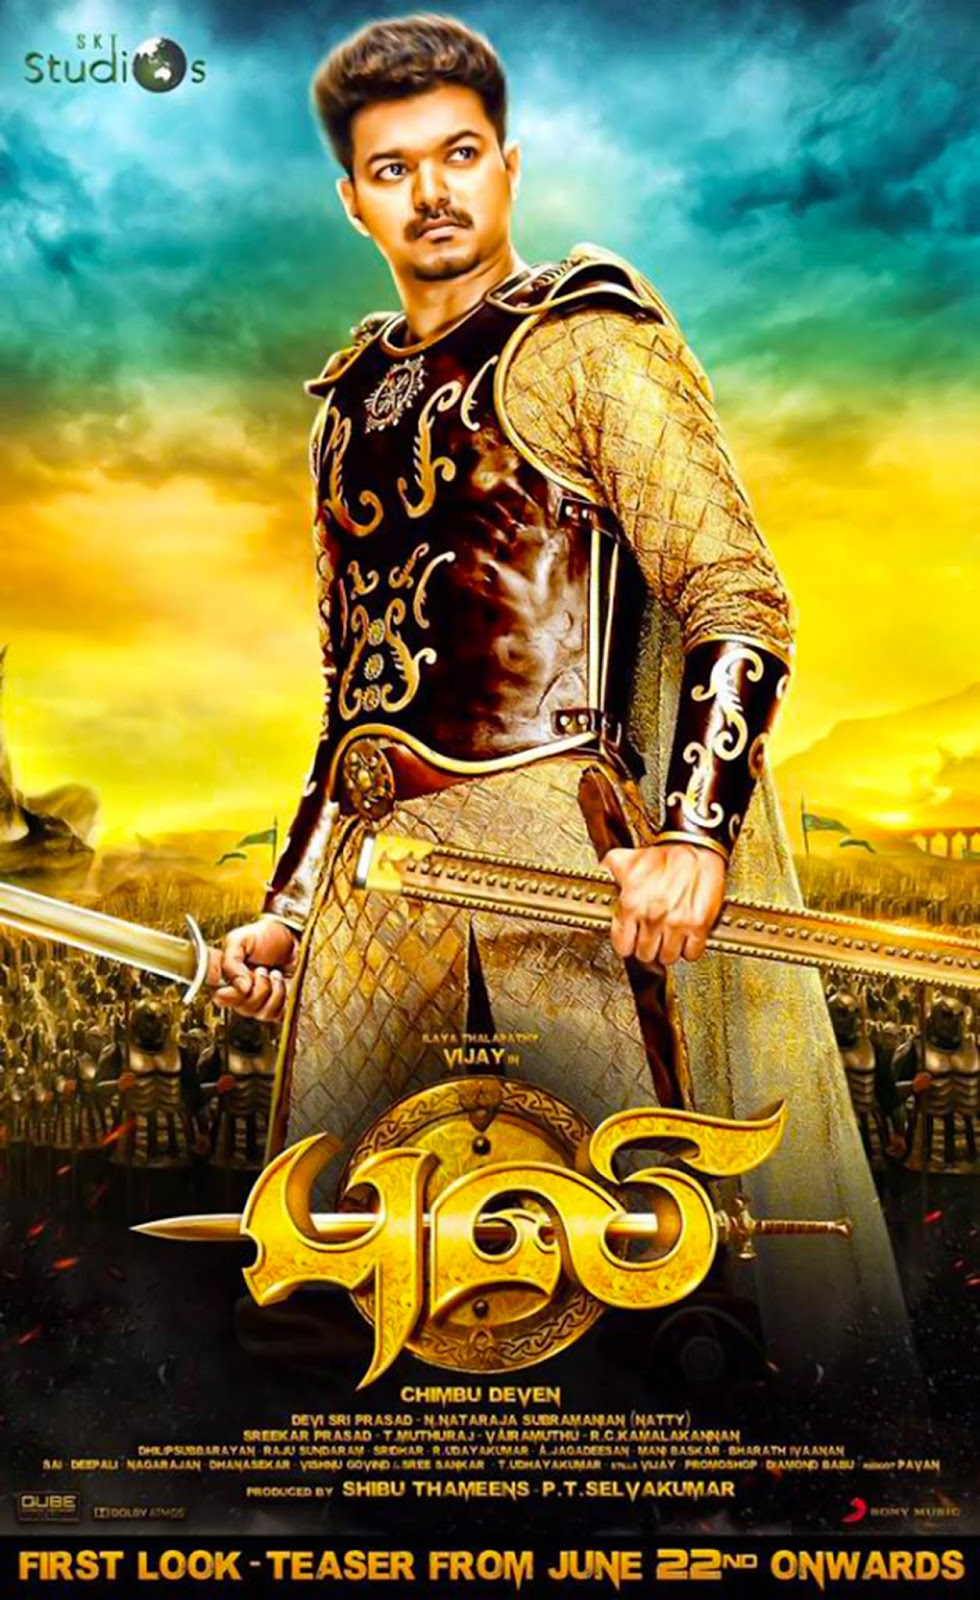 Tamil Actors Actress Gallery Movie Stills Images Videos Puli First Look Hd Poster